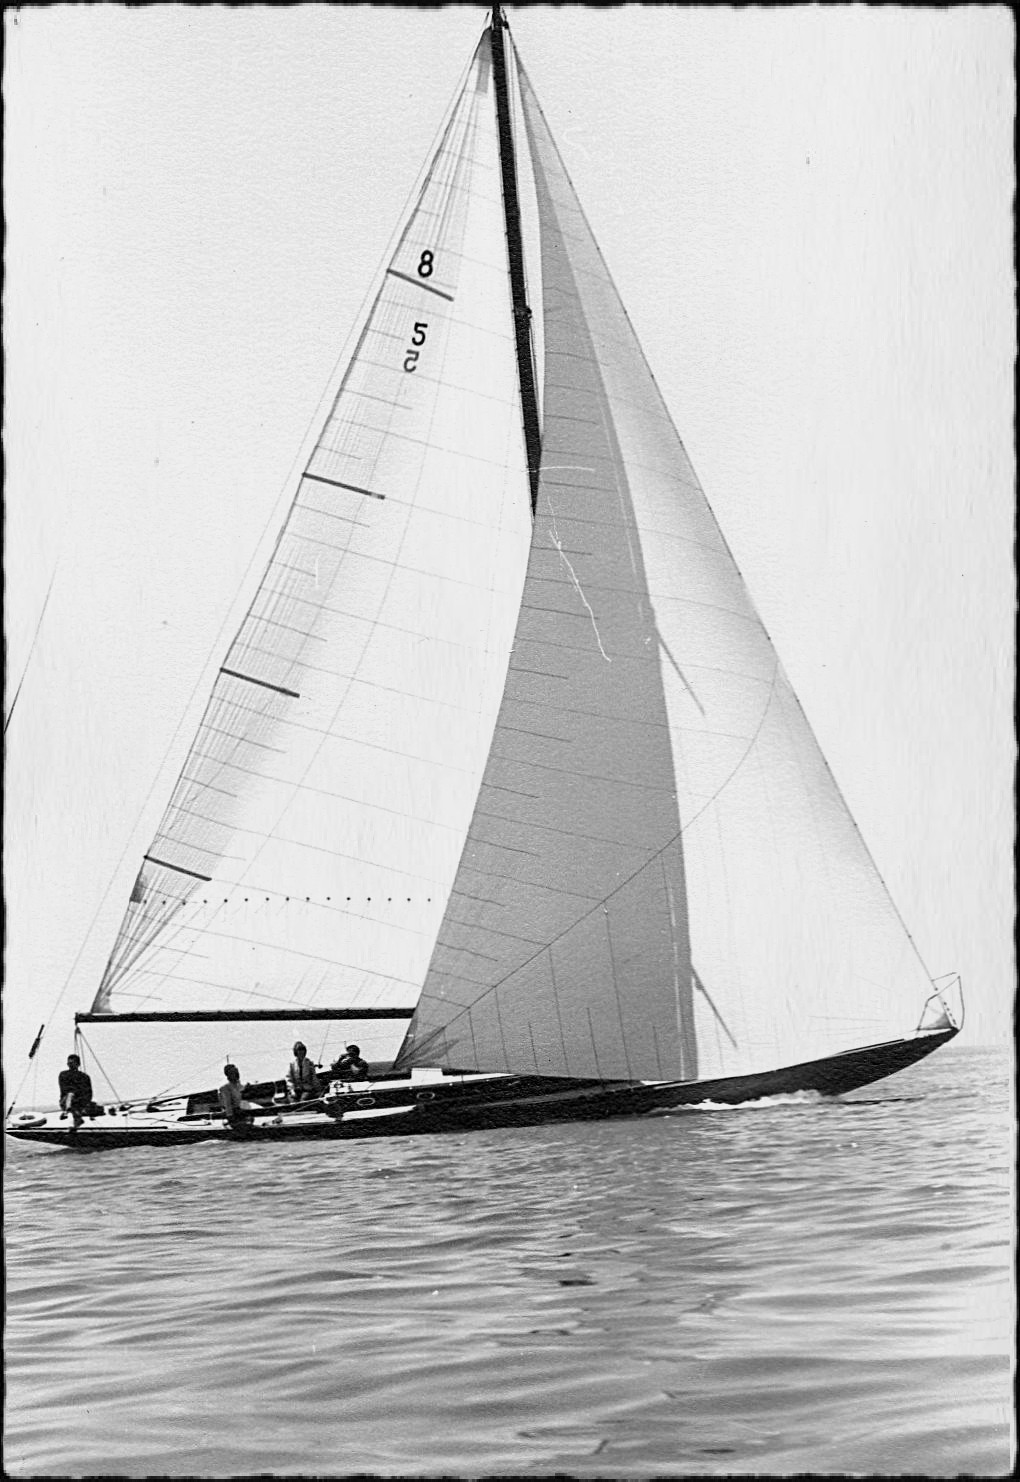 Photo of sailboat Warrior under sail on Lake Michigan